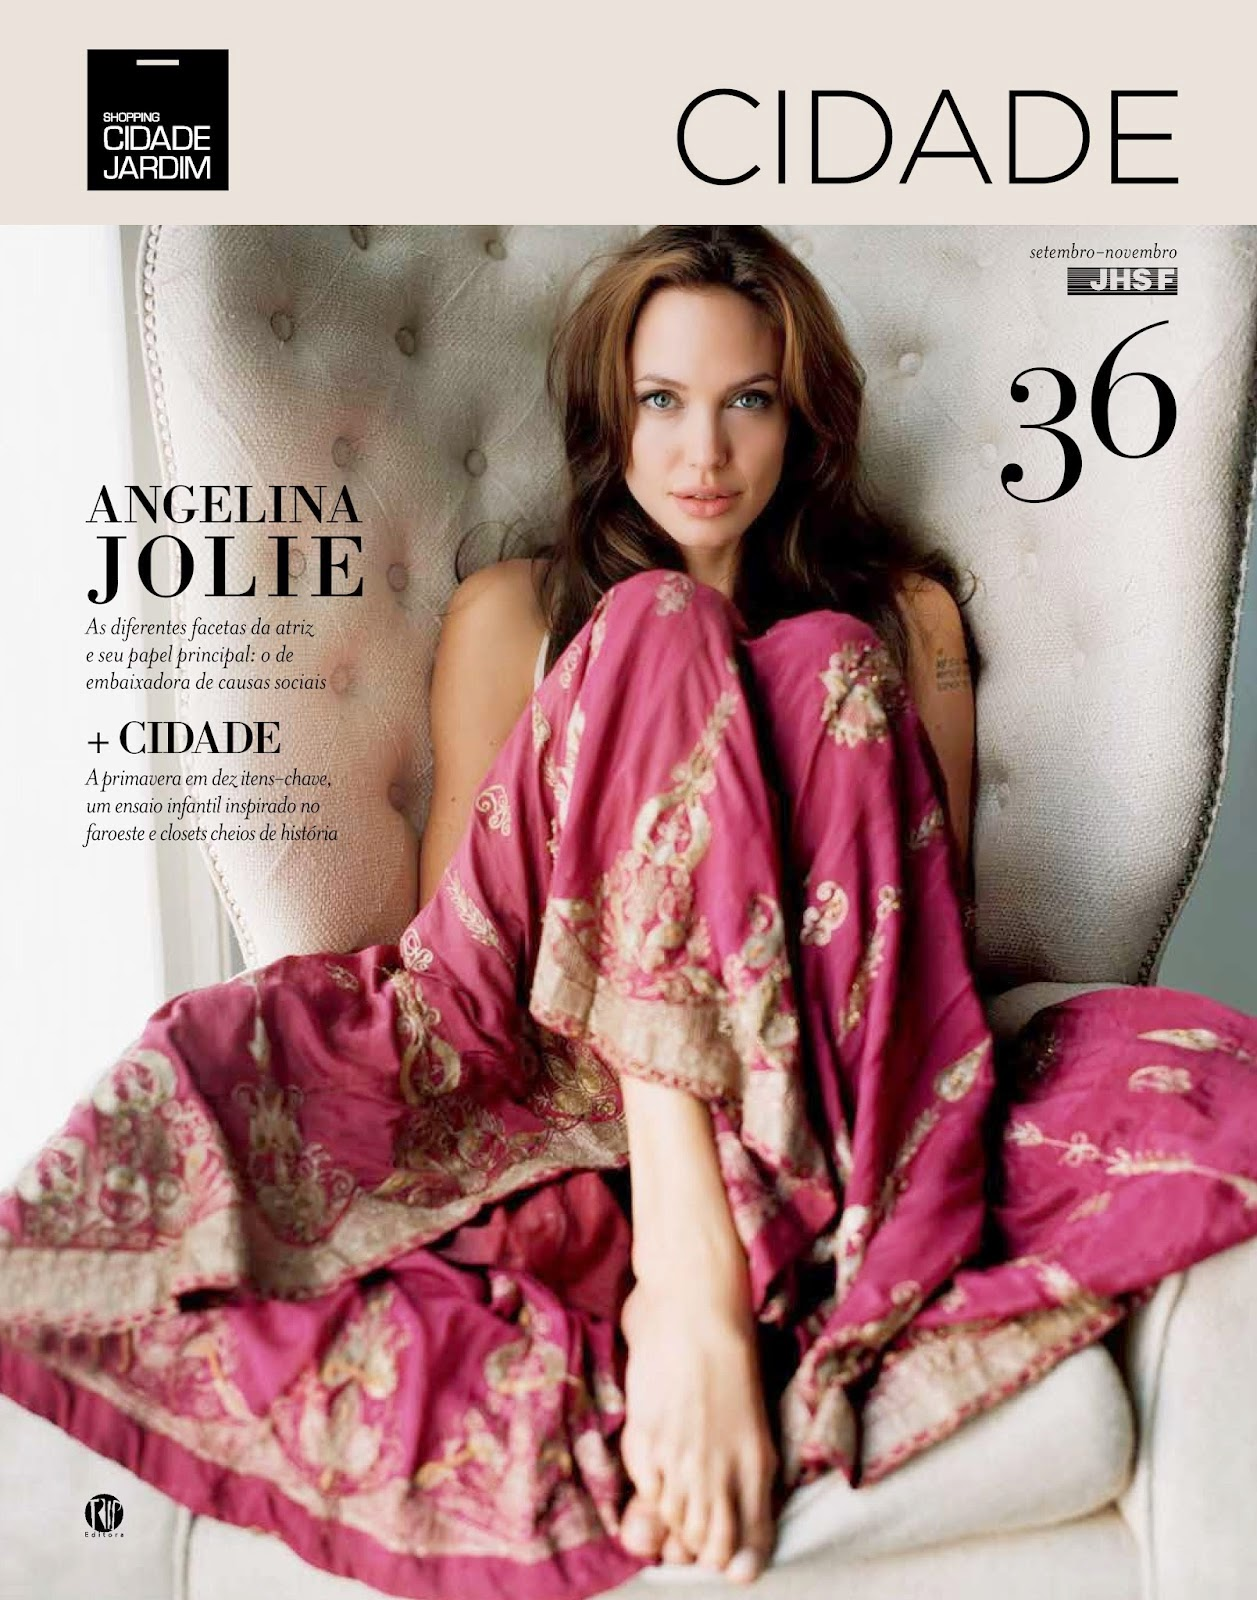 Angelina Jolie graces the cover and gives an interview to the magazine Garden City